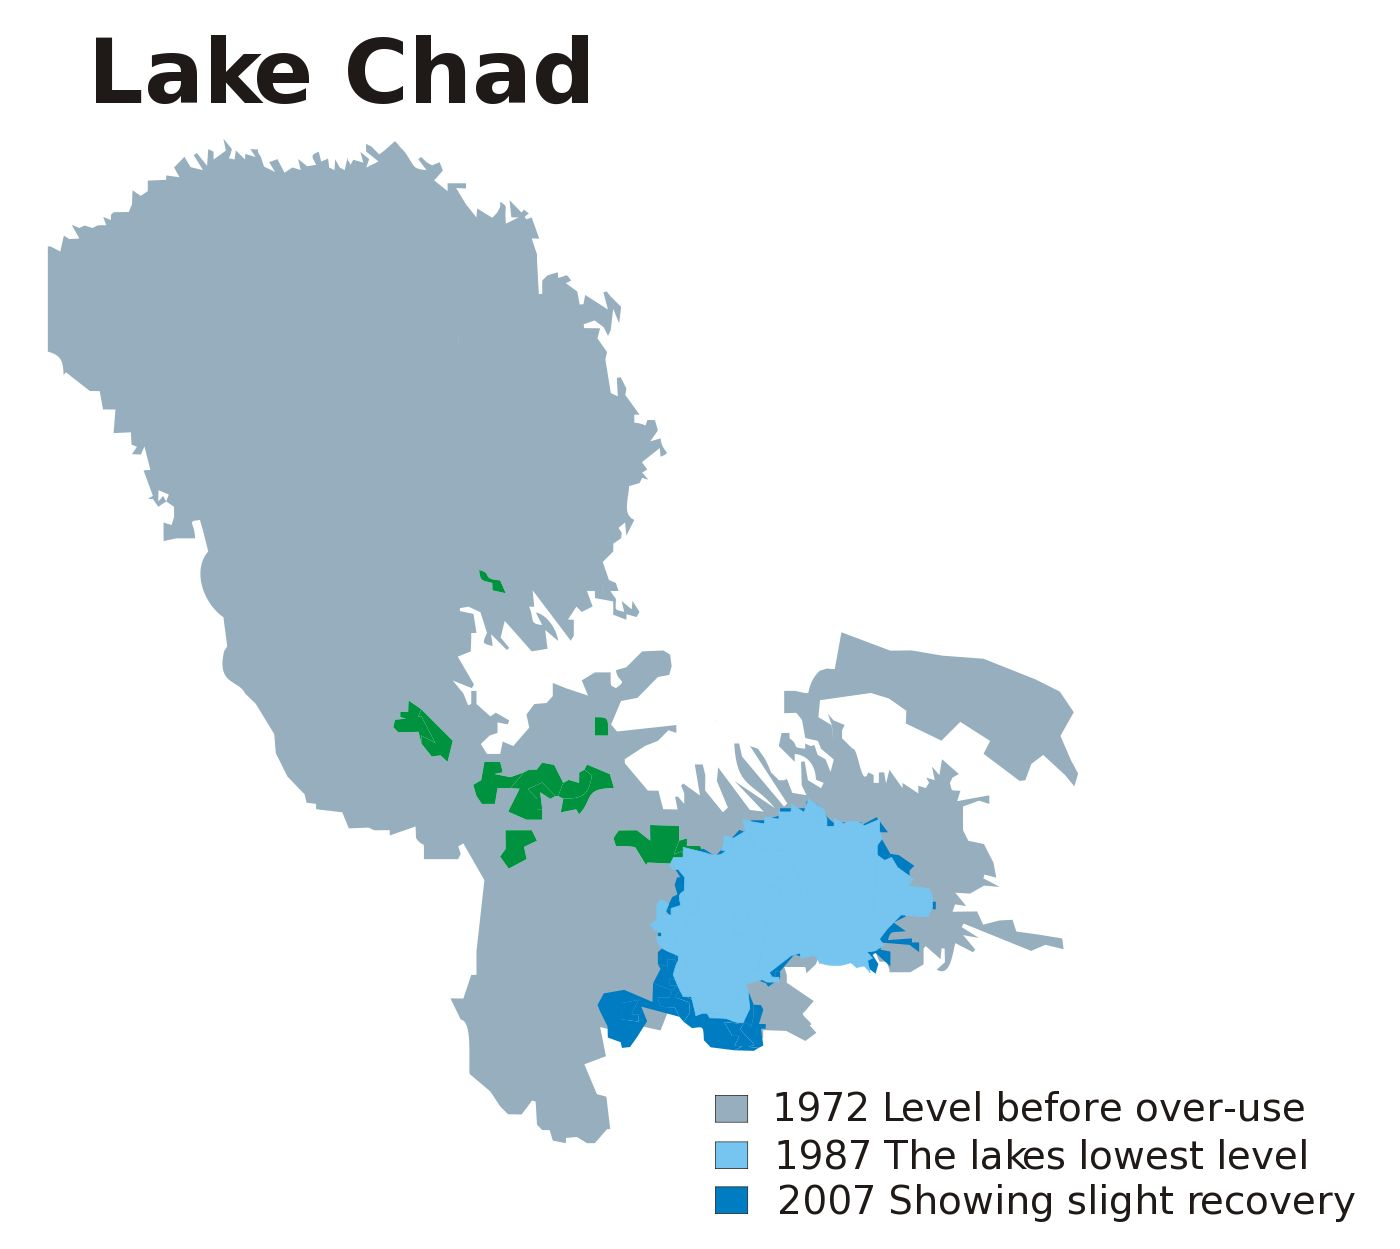 Lake Chad shrank by 95% since 1963